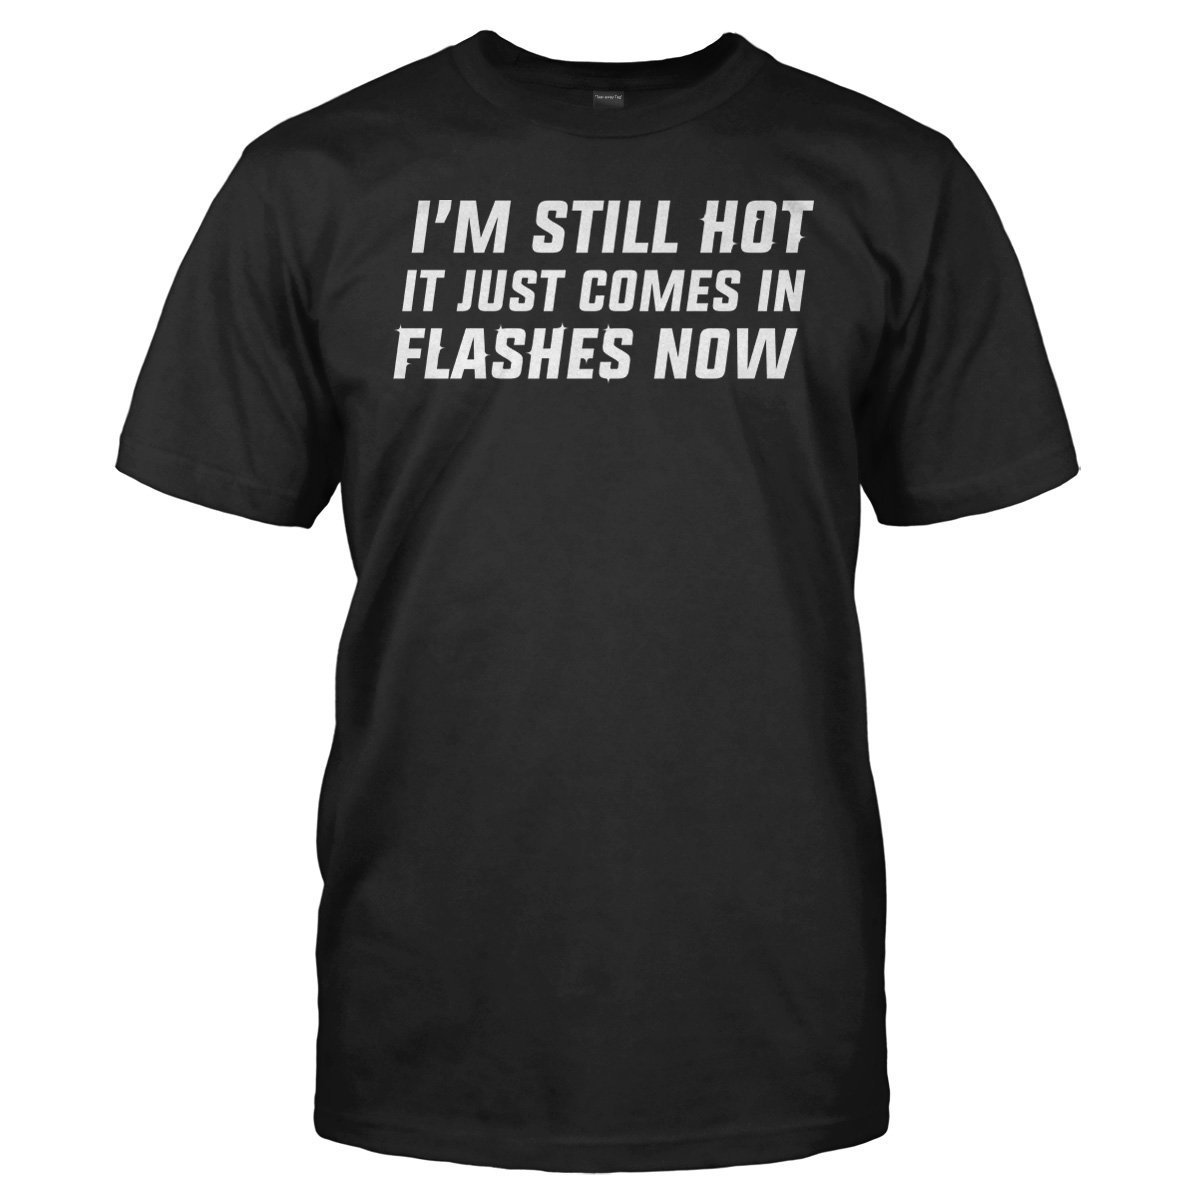 f8712902 I'm Still Hot. It Just Comes In Flashes Now T-Shirt - I Love Apparel